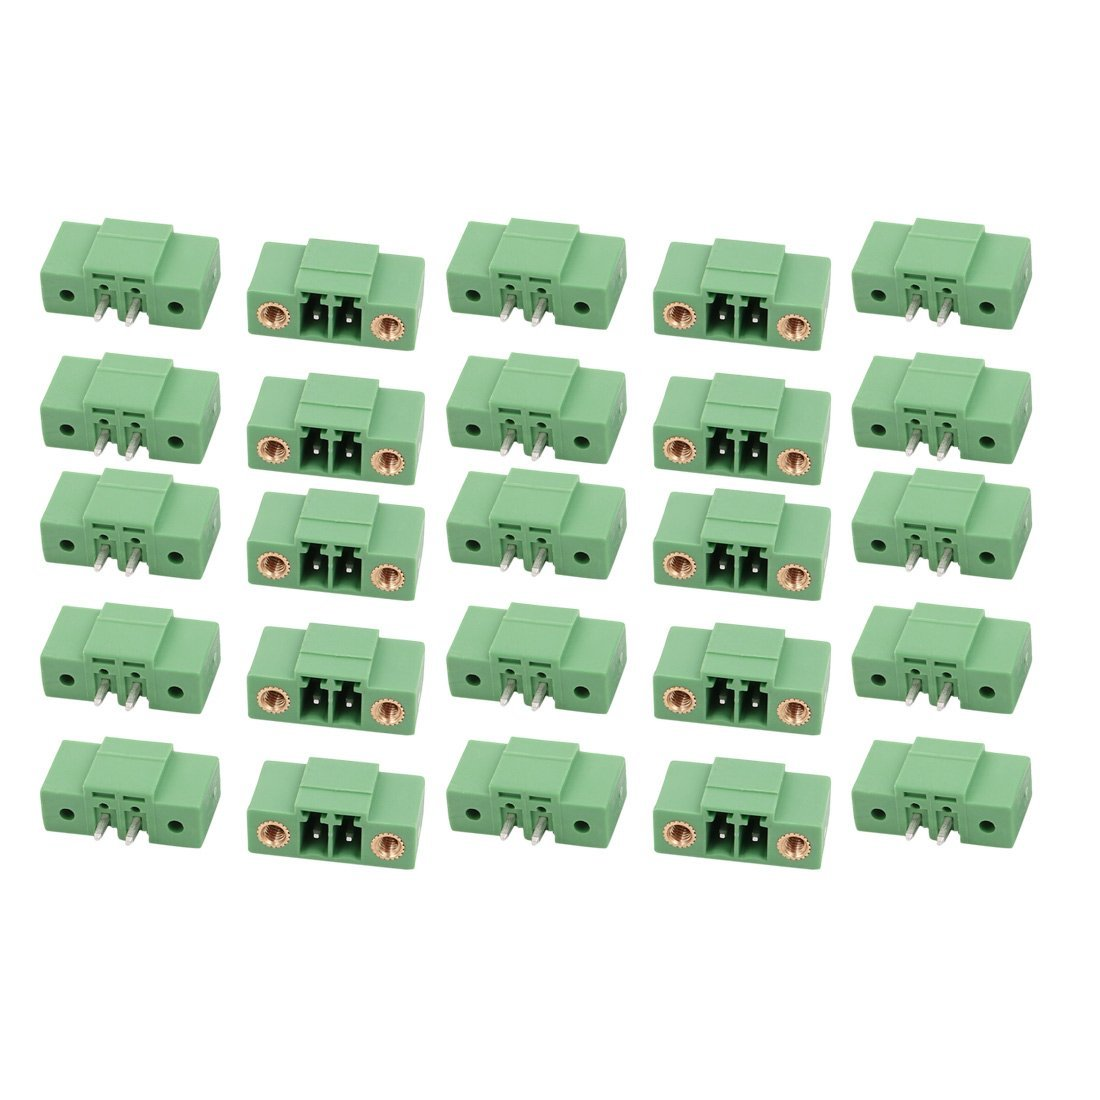 uxcell 25Pcs AC 300V 8A 3.5mm Pitch 2P Terminal Block Wire Connector for PCB Mounting Green